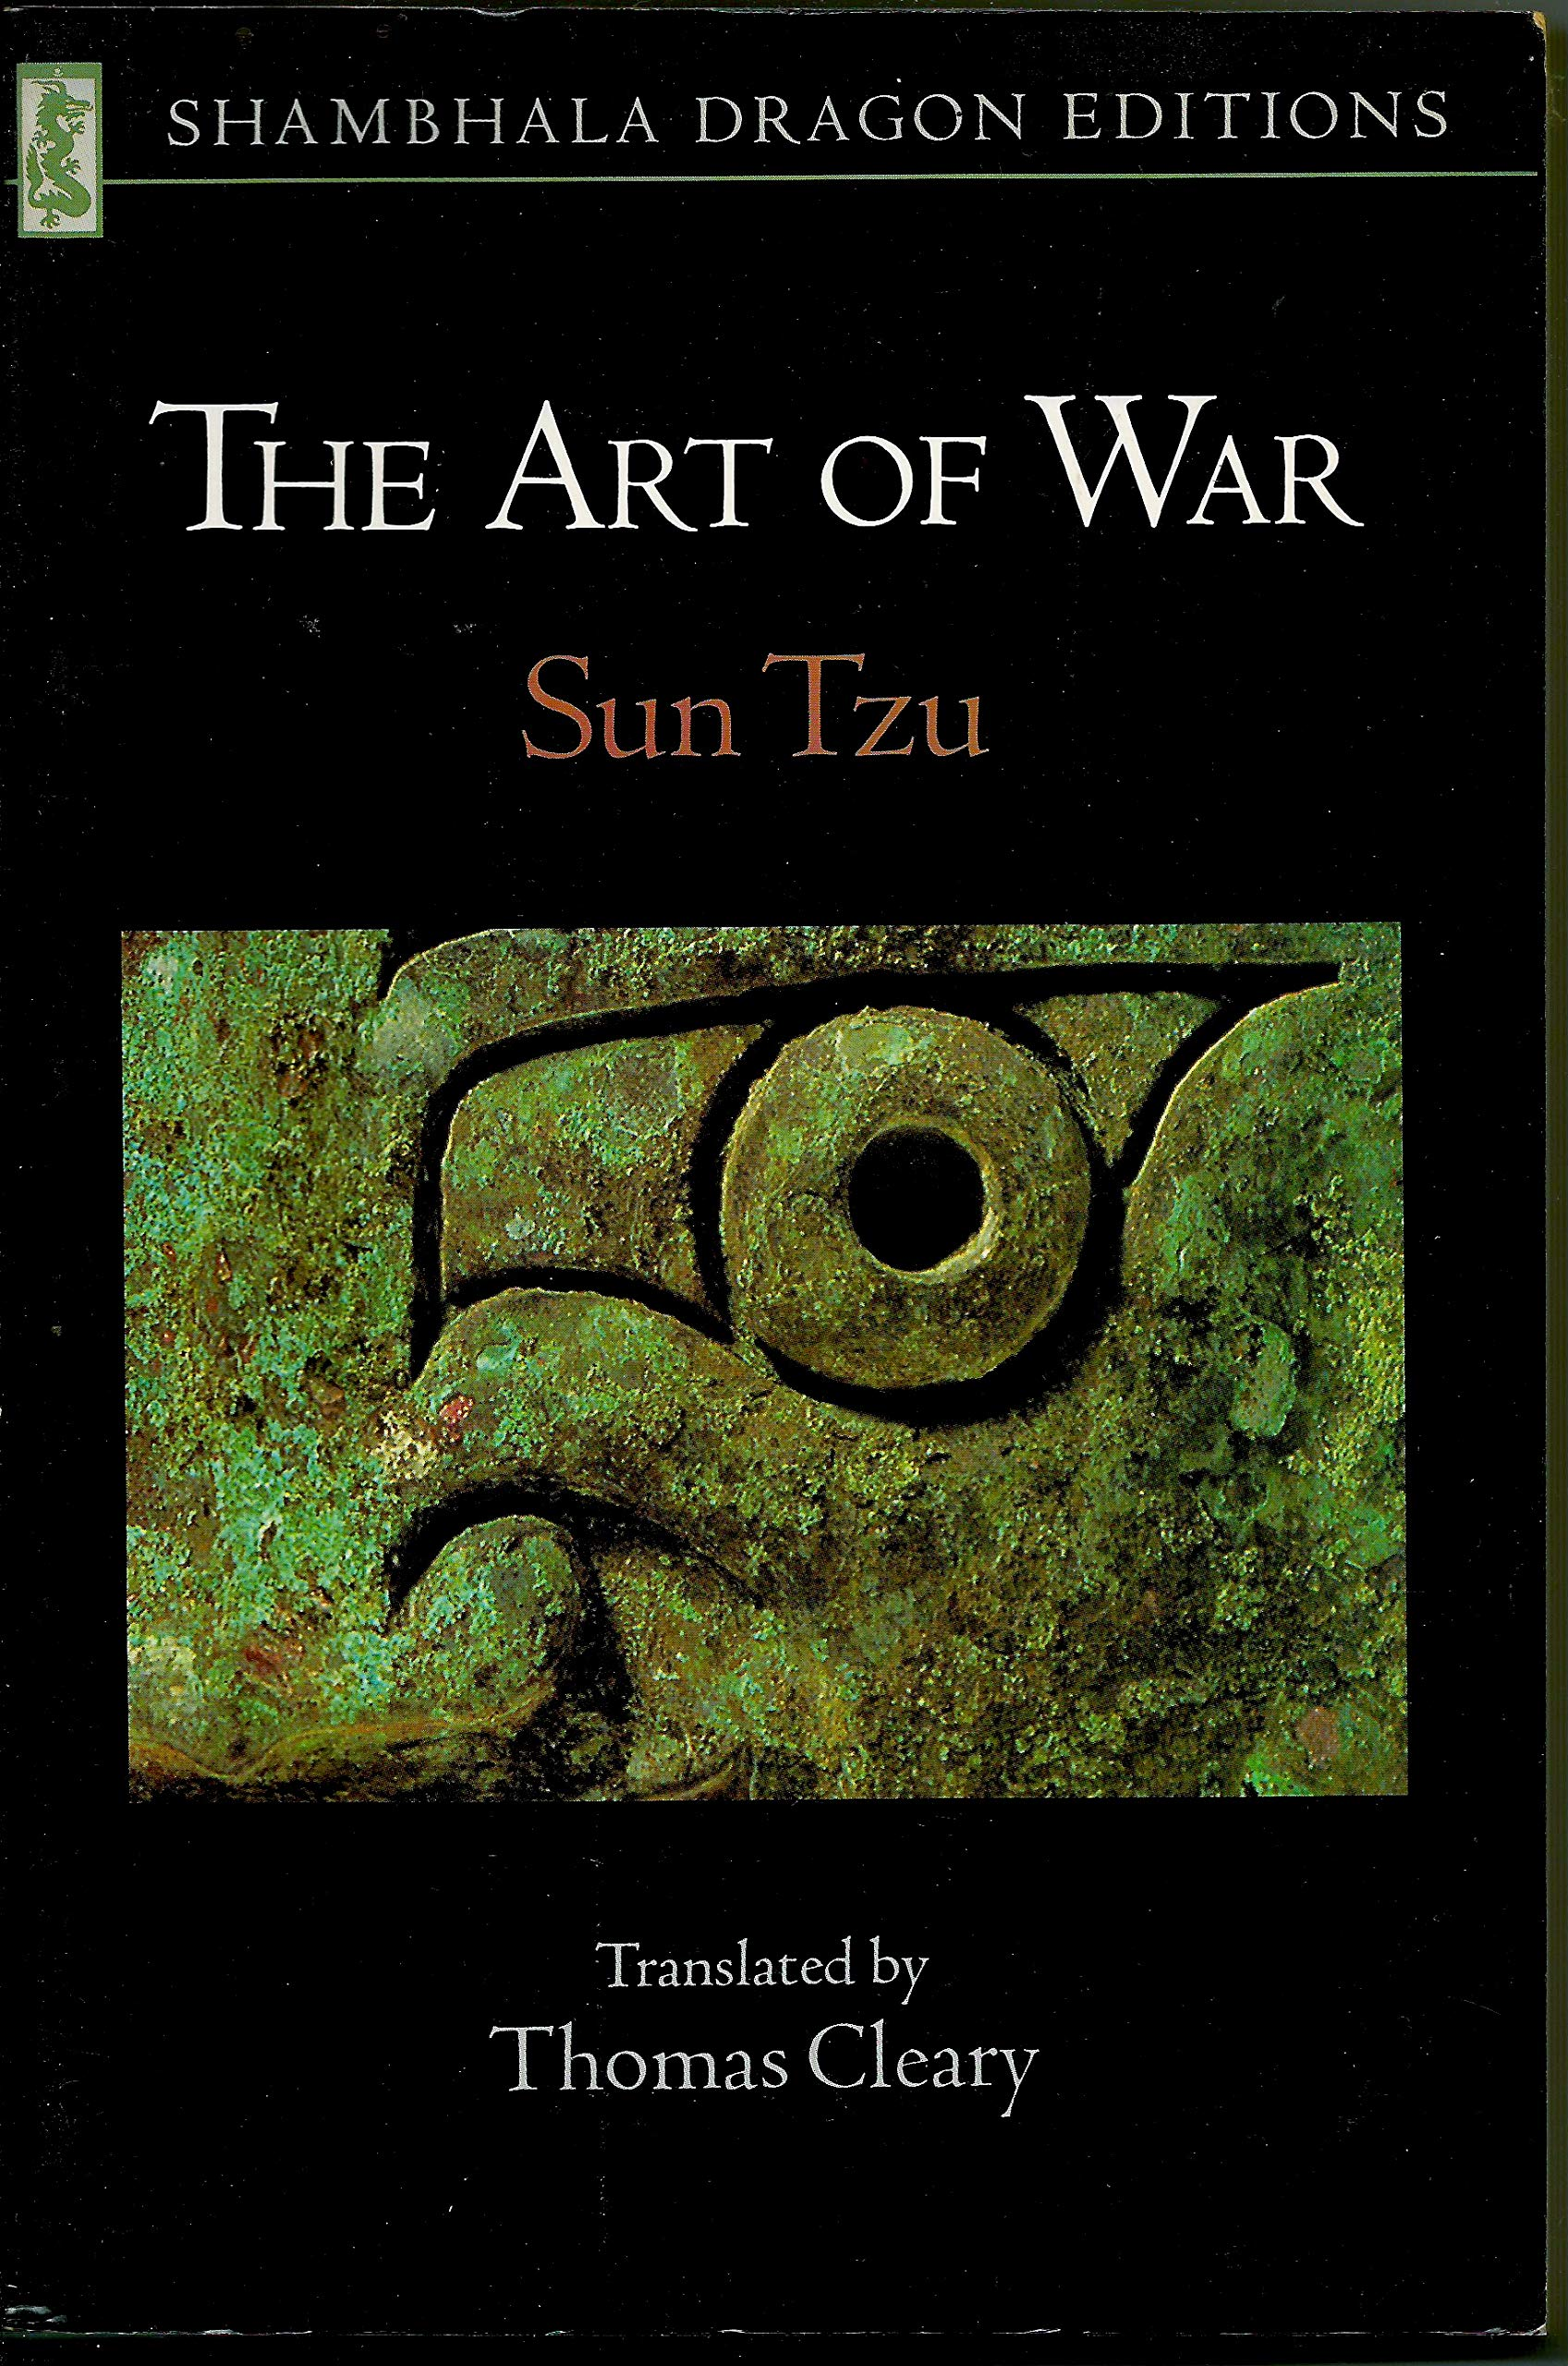 The Art Of War Paperback Chinese English Common By Author Sun Zi By Author Tzu Sun Translated By Thomas Cleary 0884332554352 Amazon Com Books